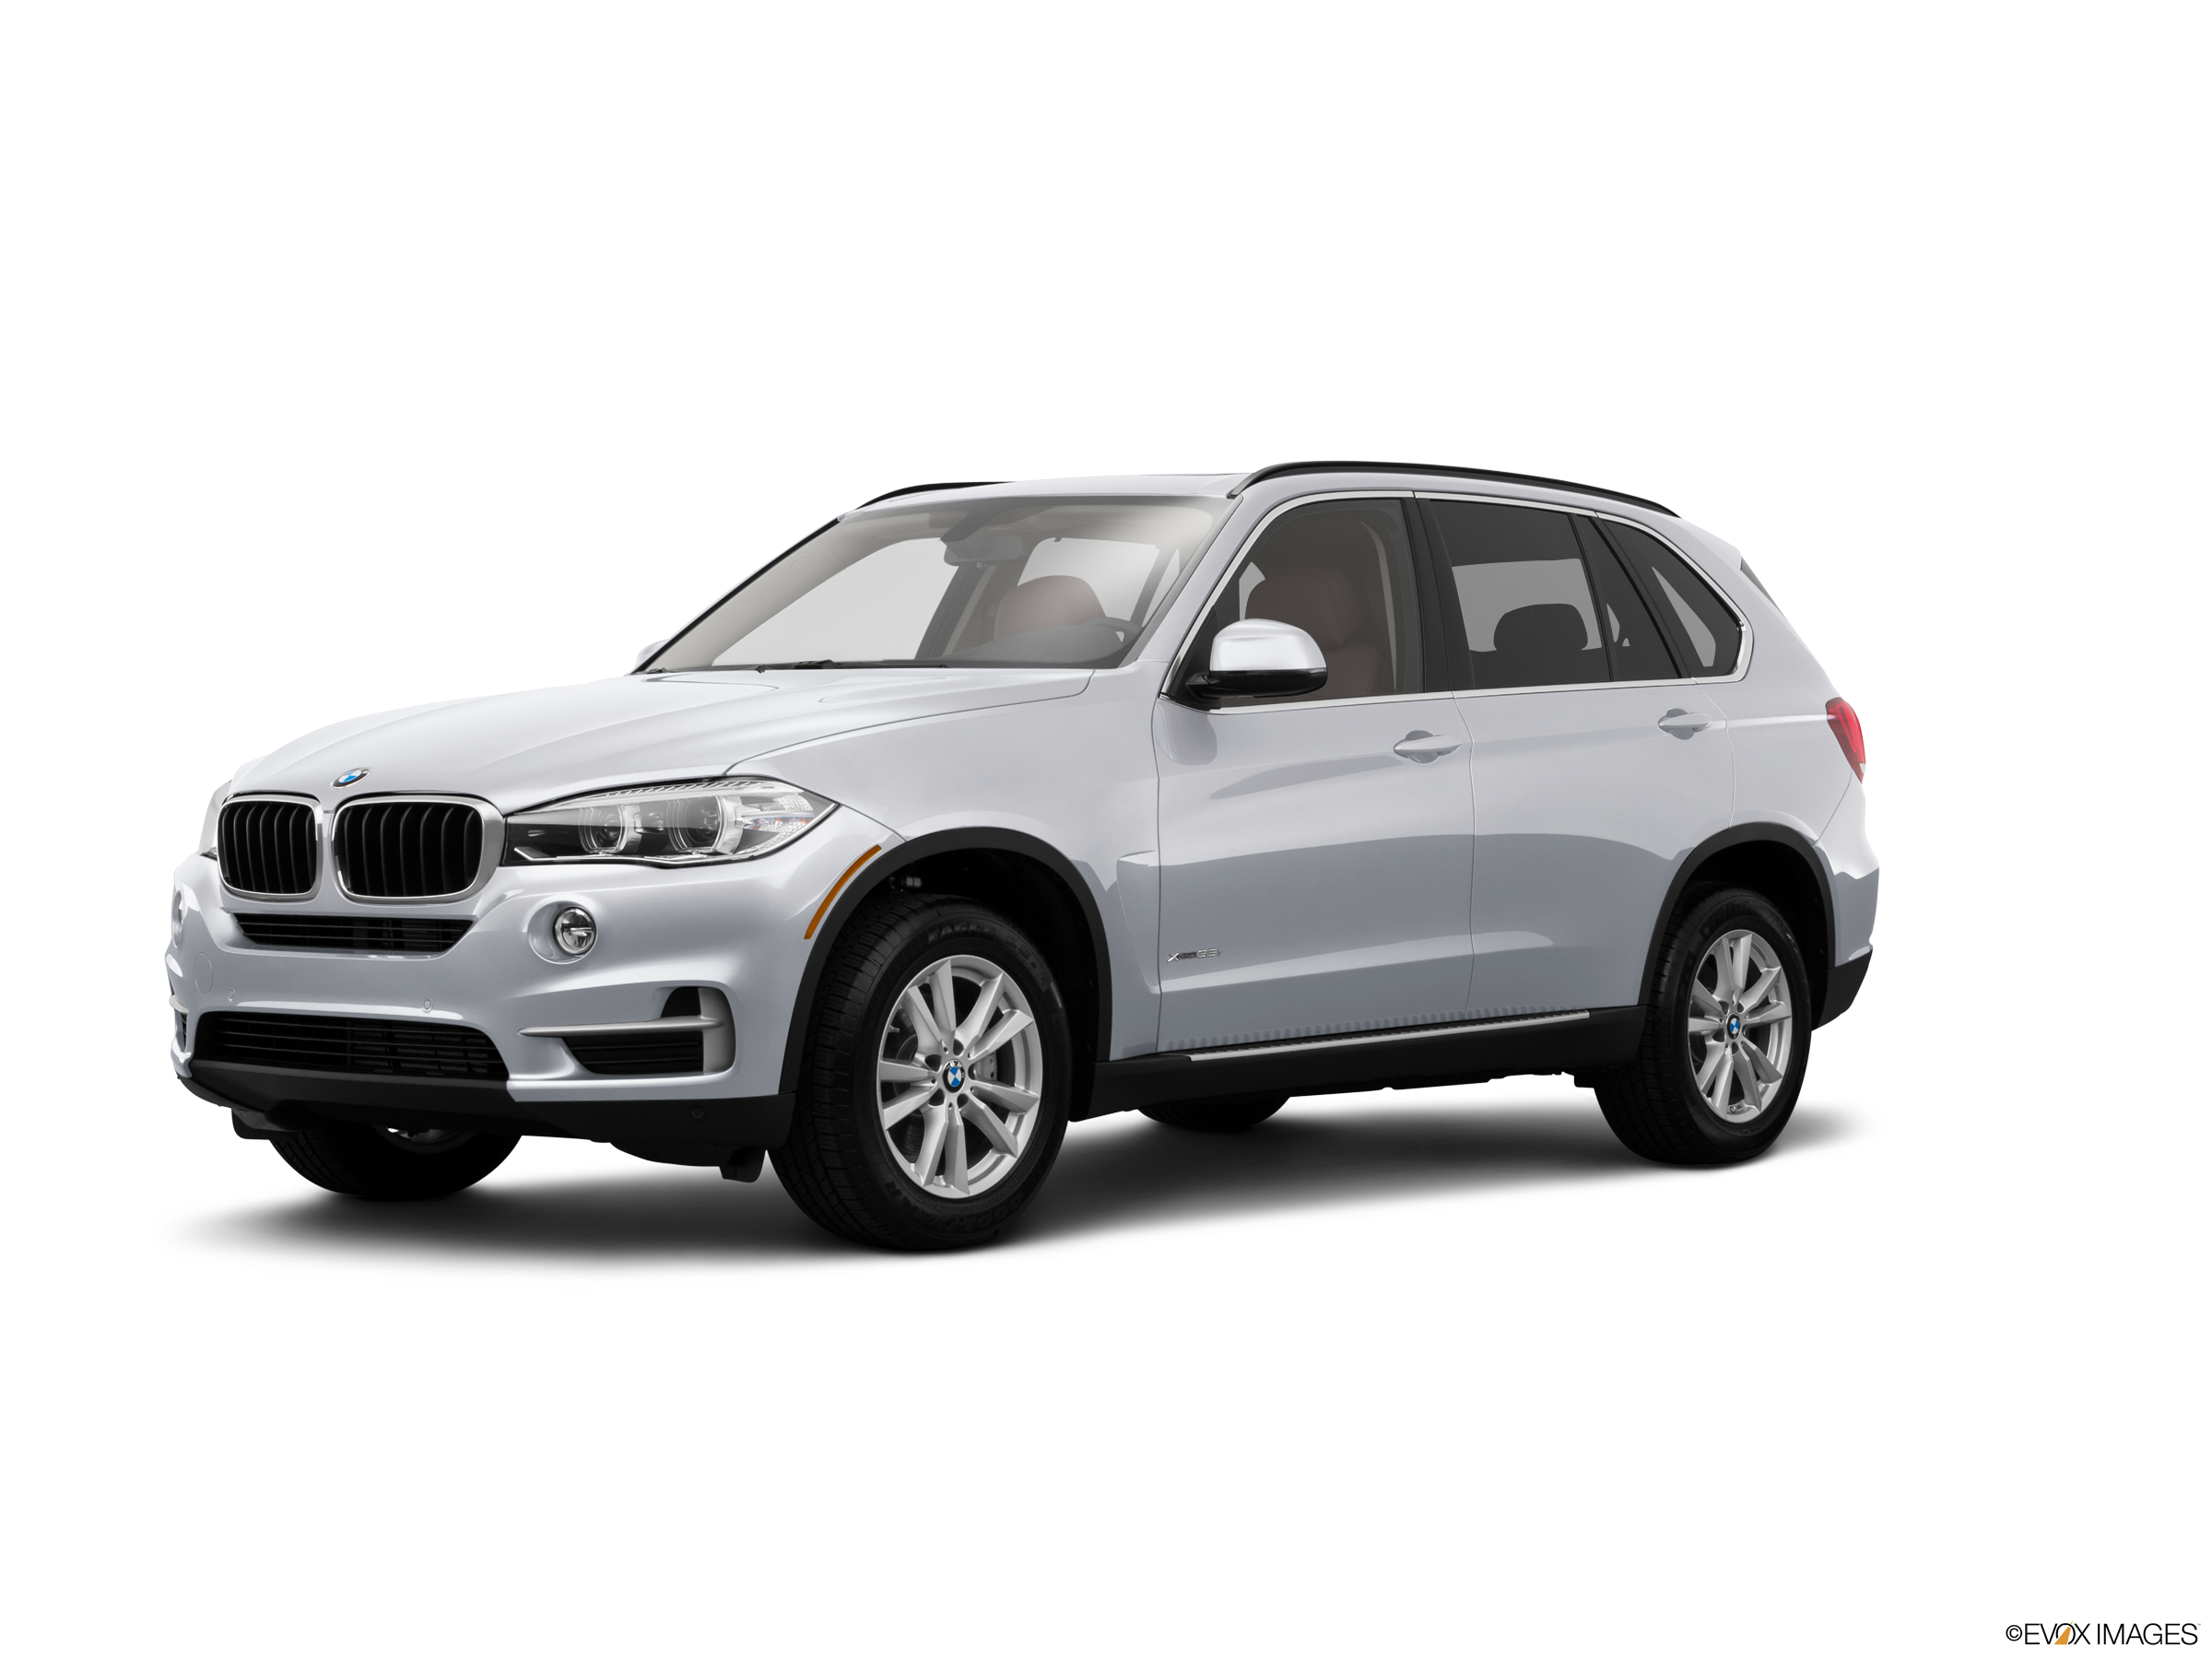 2015 Bmw X5 Values Cars For Sale Kelley Blue Book